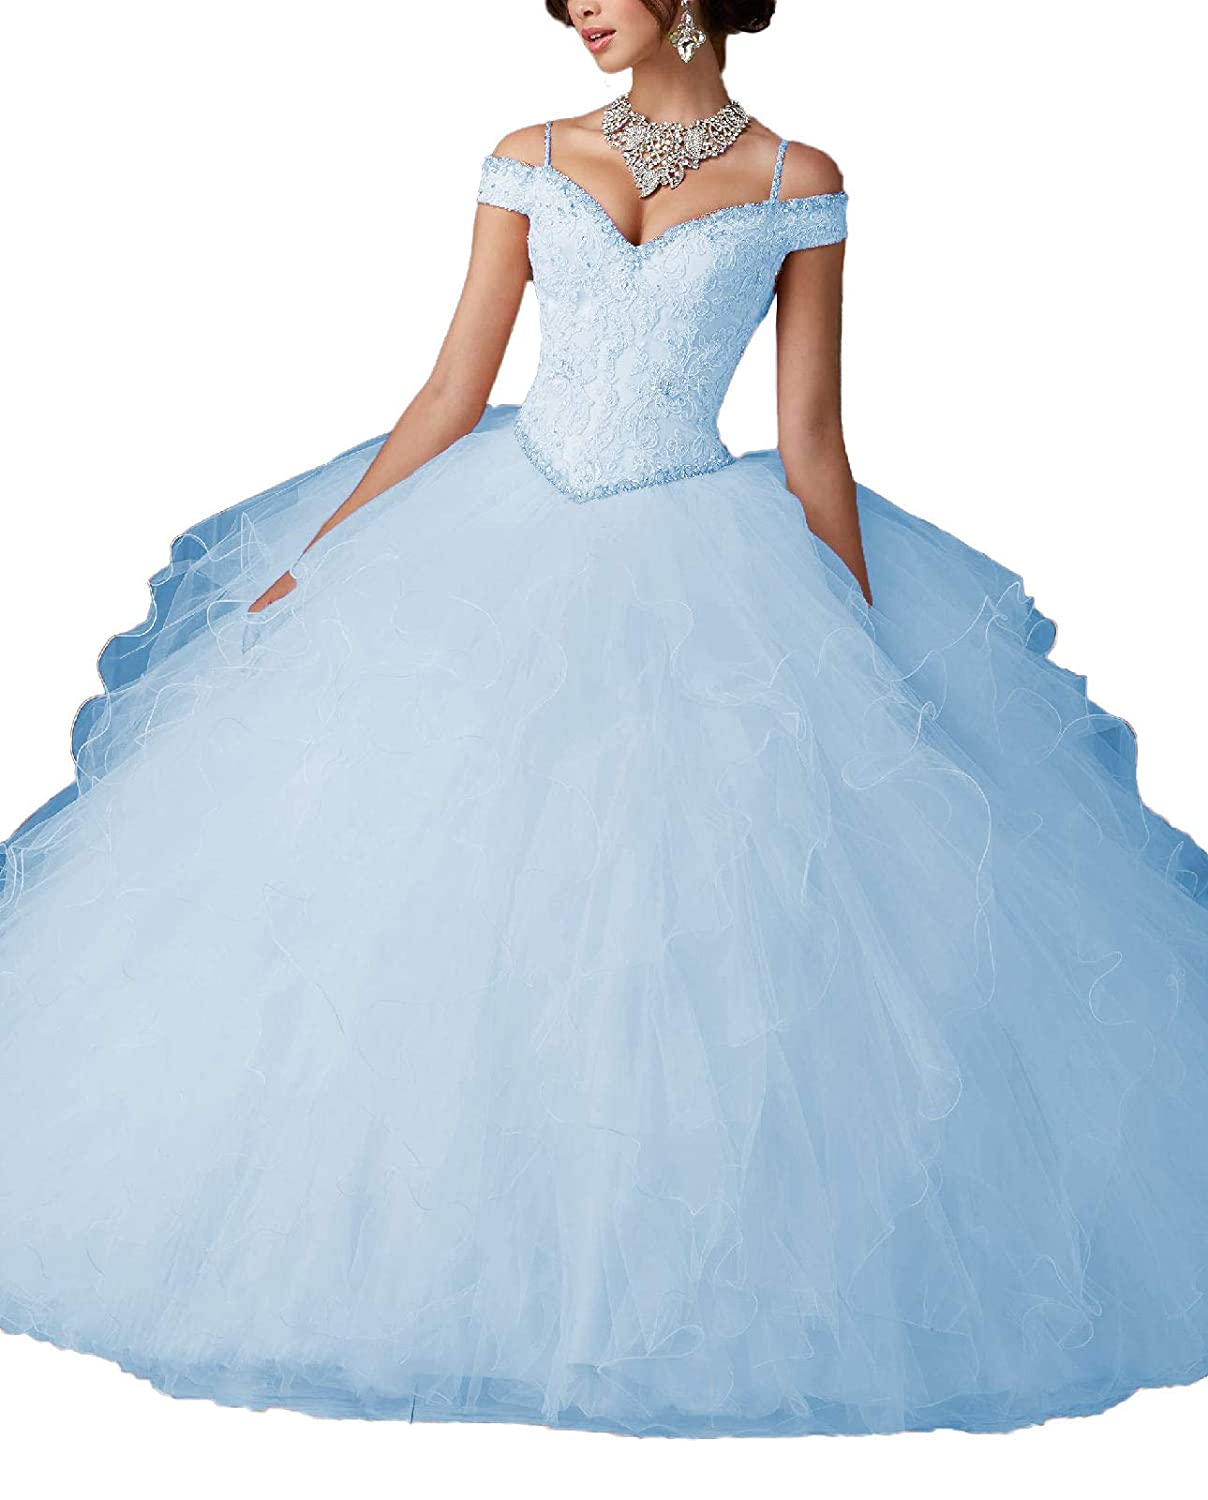 Light bluee Yisha Bello Women's Off The Shoulder Lace Applique Beaded Evening Ball Gowns Ruffles Quinceanera Dresses